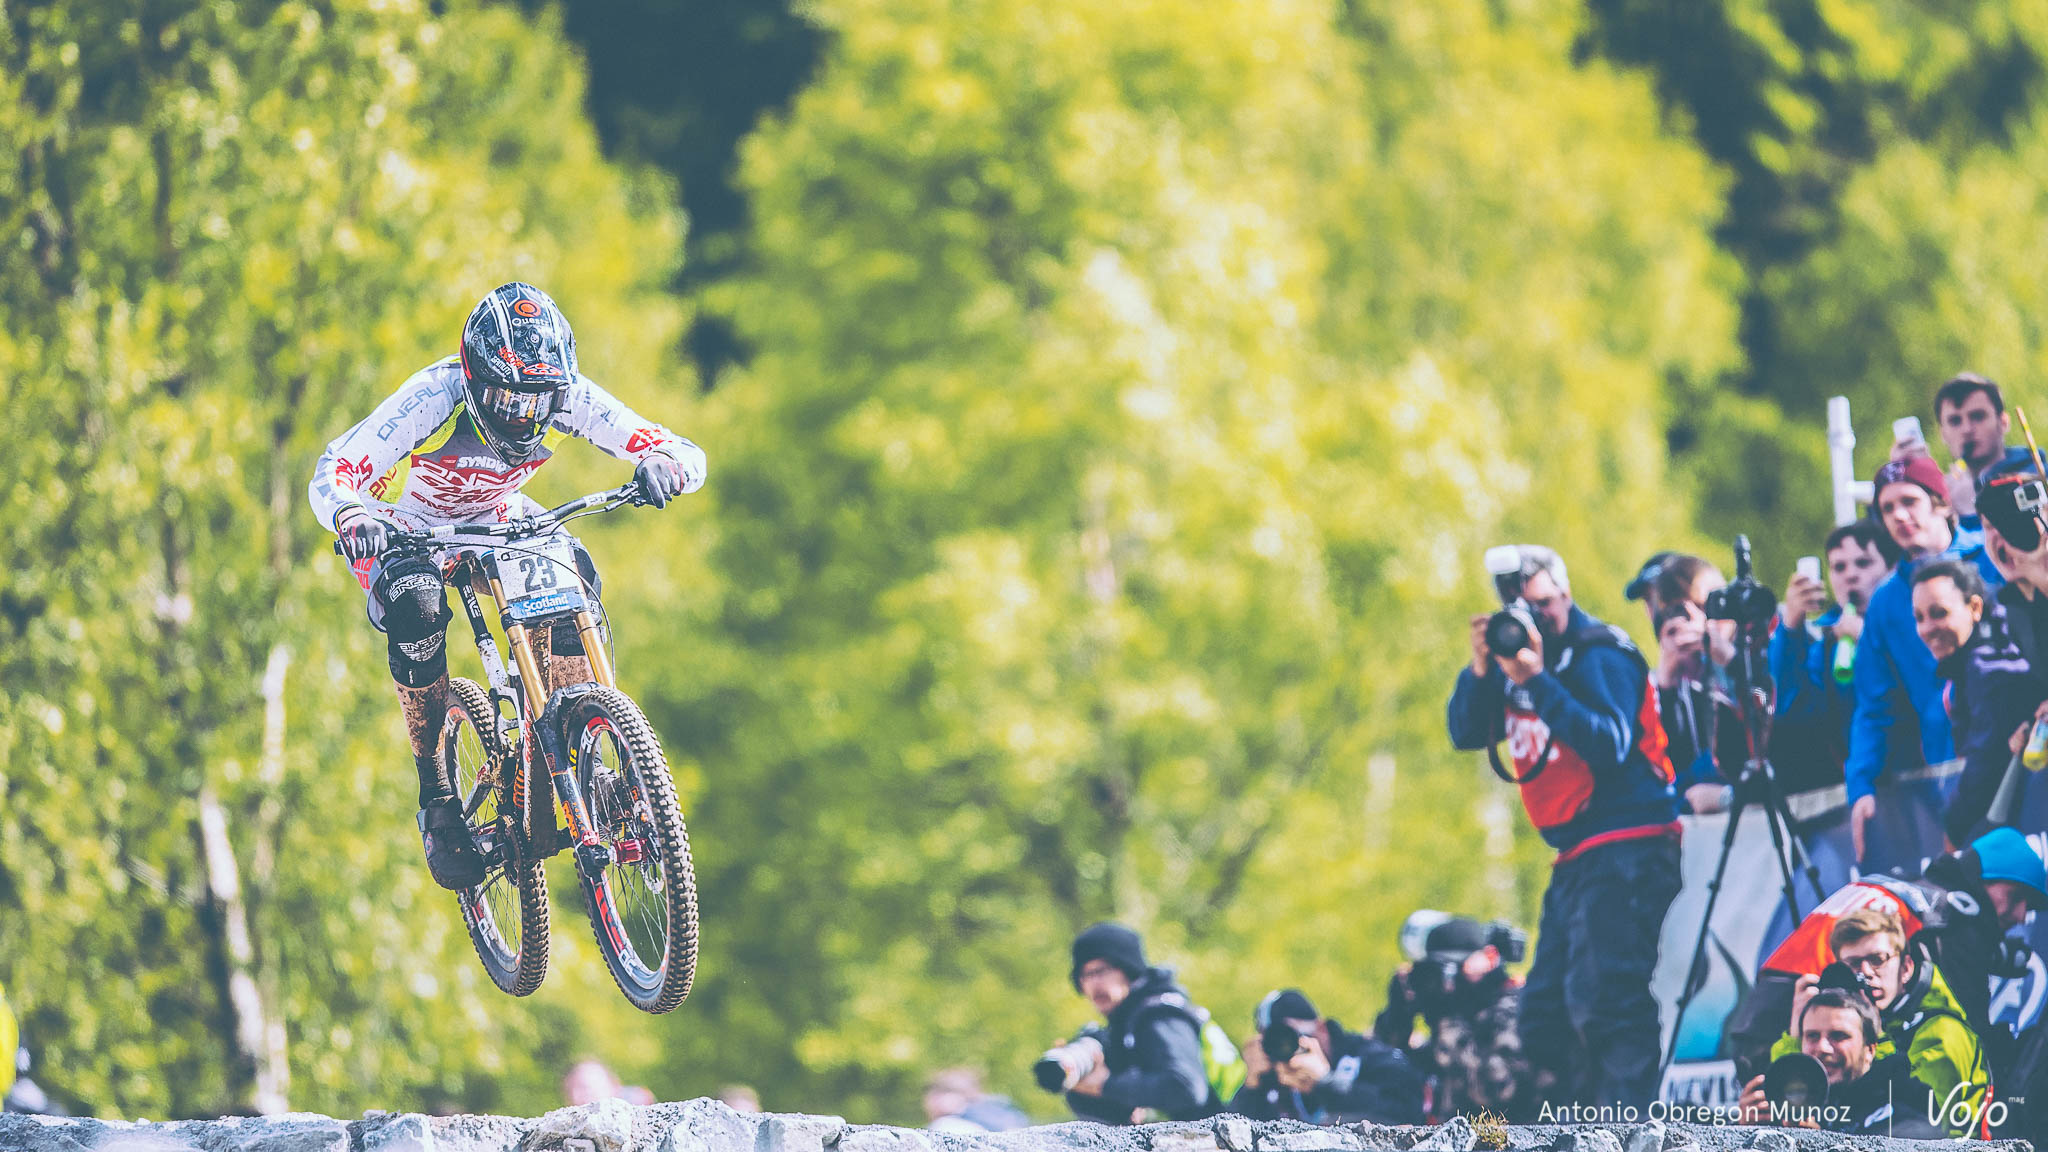 Fort_William_UCI_World_Cup_DH_2015_(finales_Homme_Femme)_Copyright_Antonio_Obregon_VojoMag-3